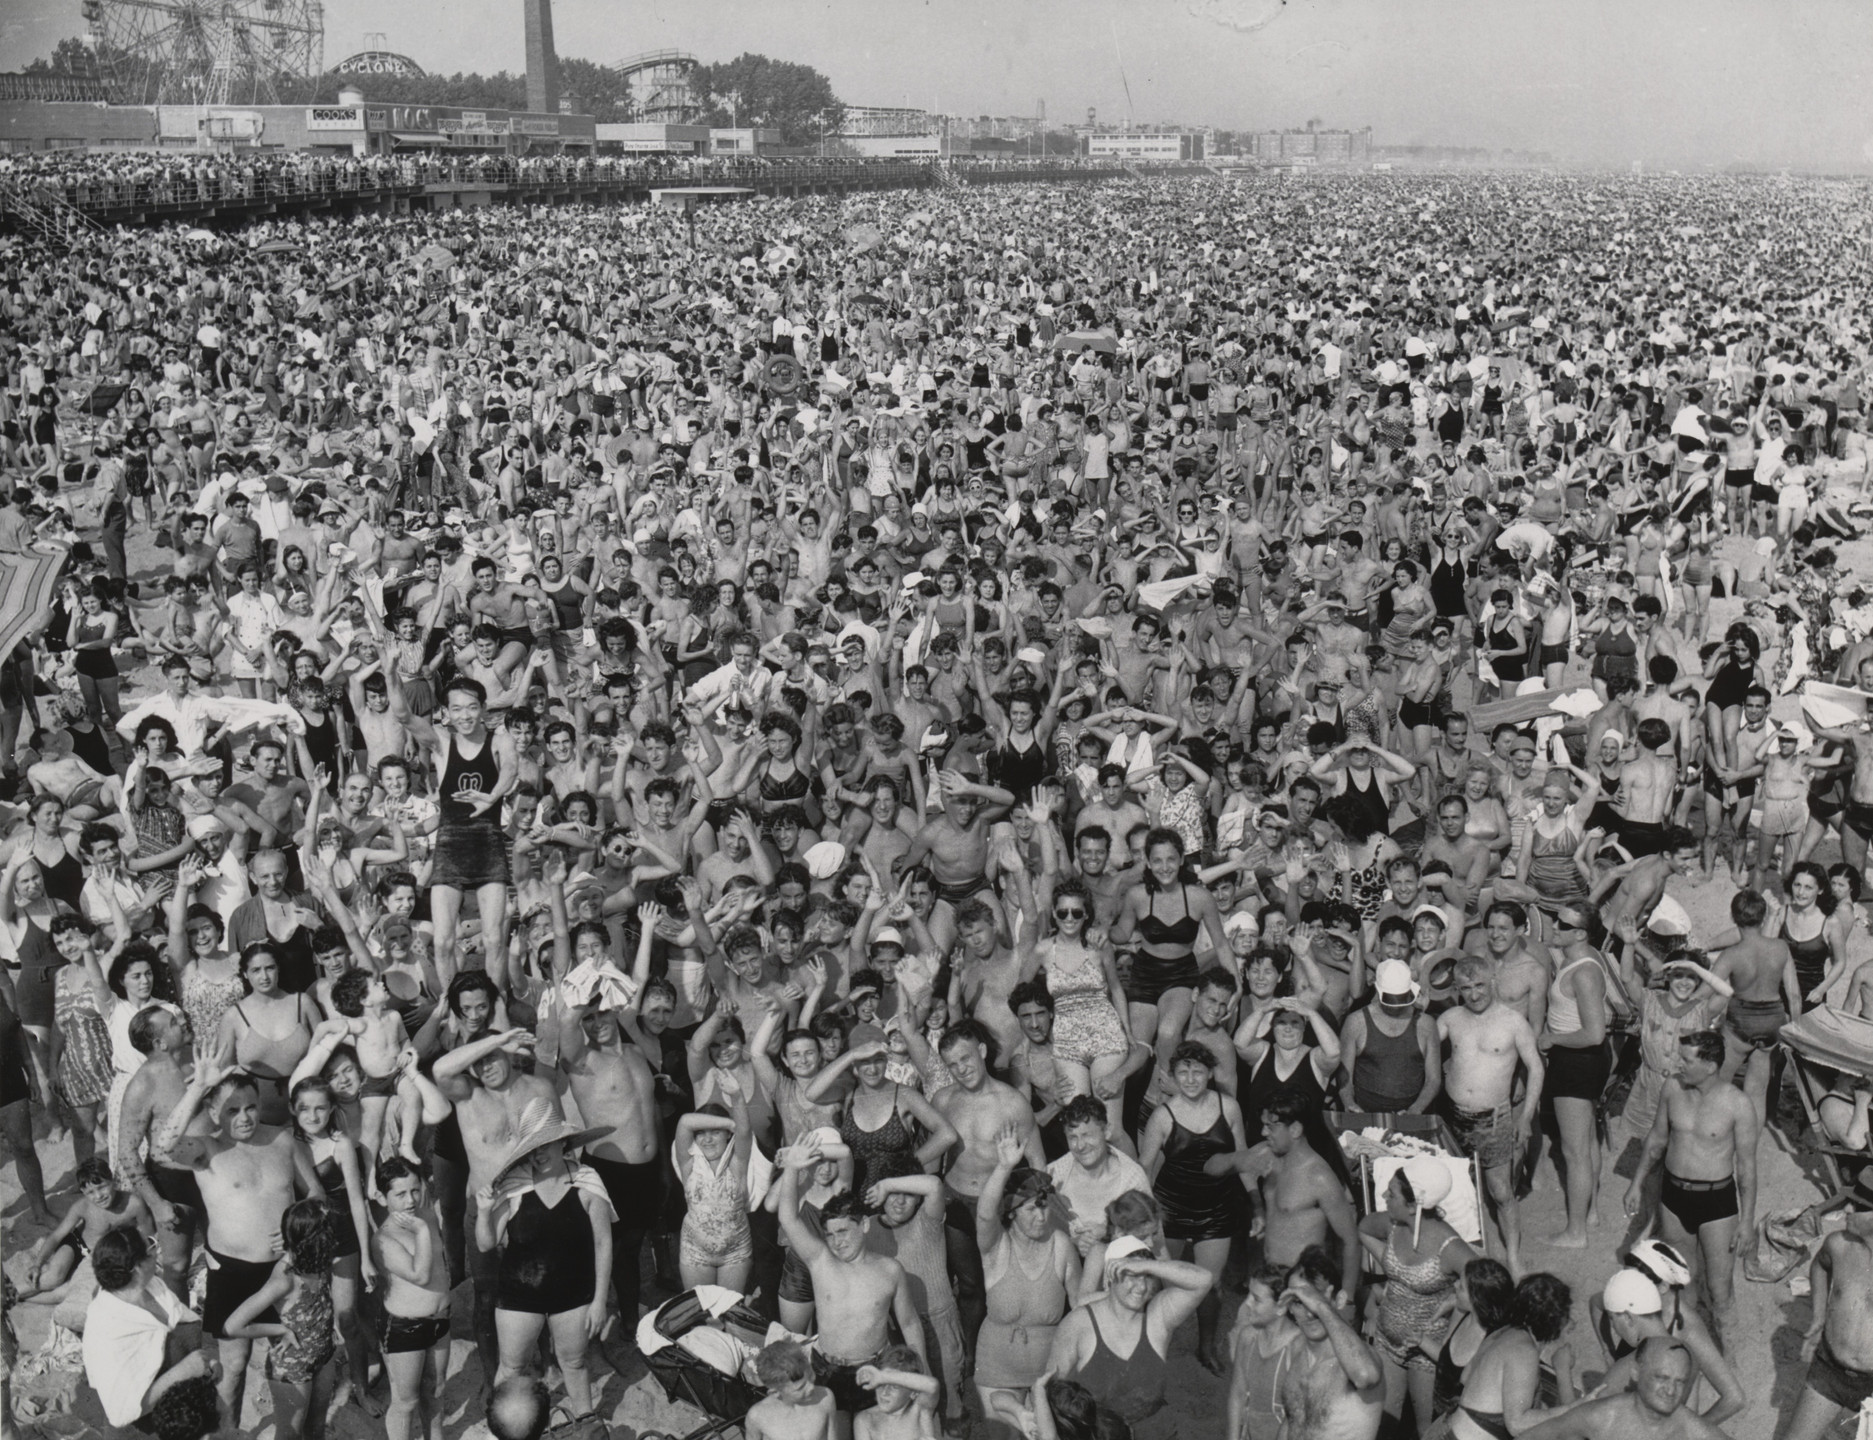 Weegee (Arthur Fellig). Coney Island. July 22, 1940